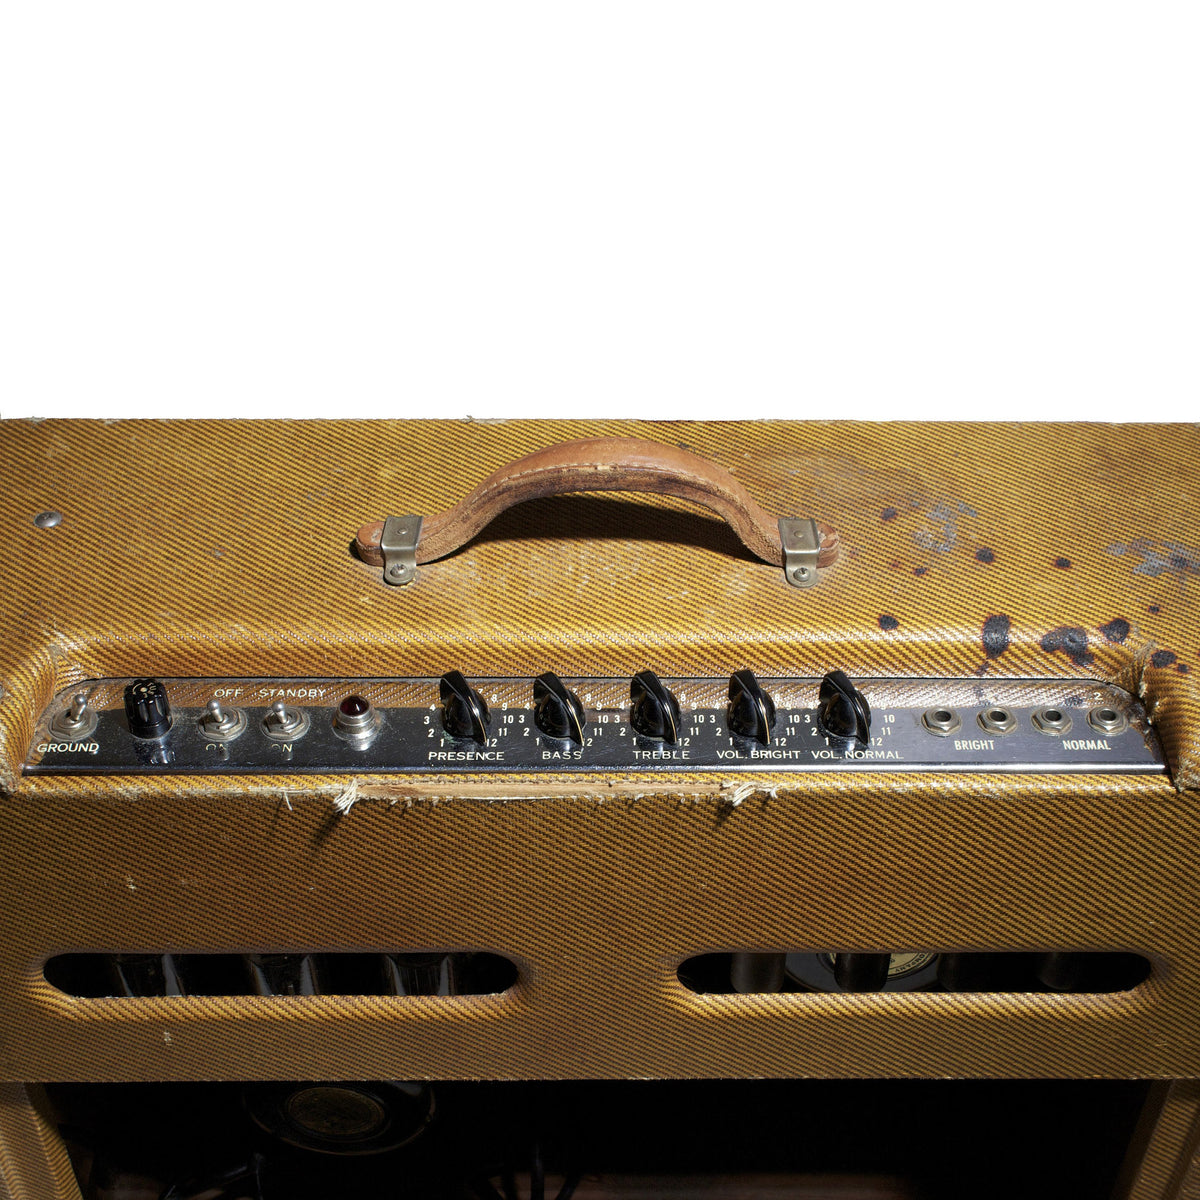 1956 Fender Twin Amplifier - Garrett Park Guitars  - 6